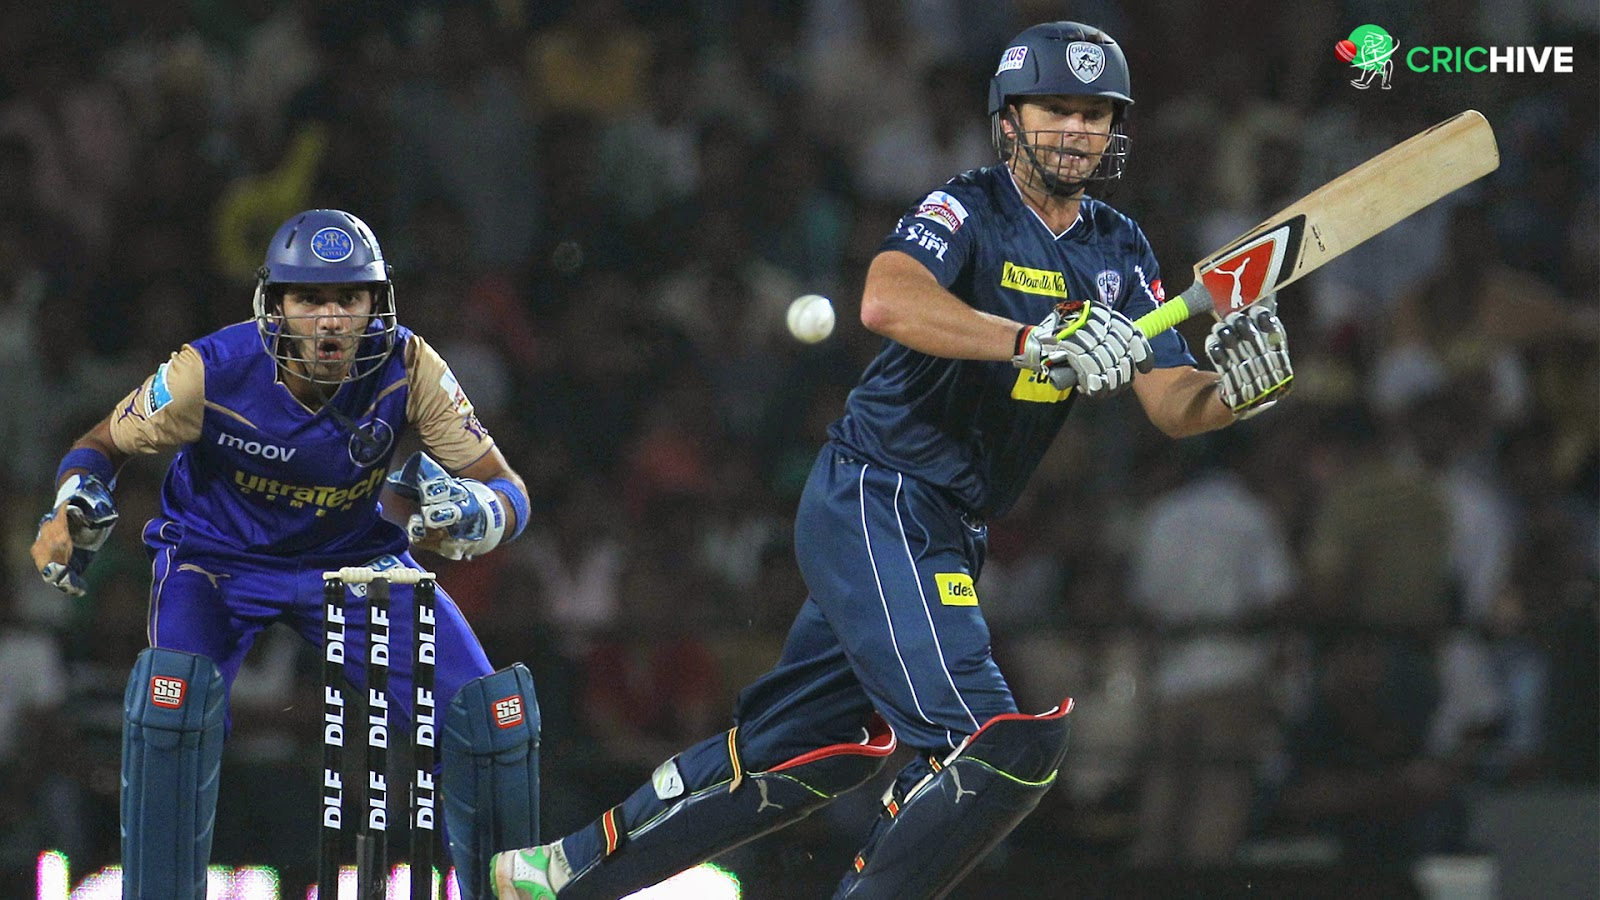 ipl wallpaper 640x1136 -#main